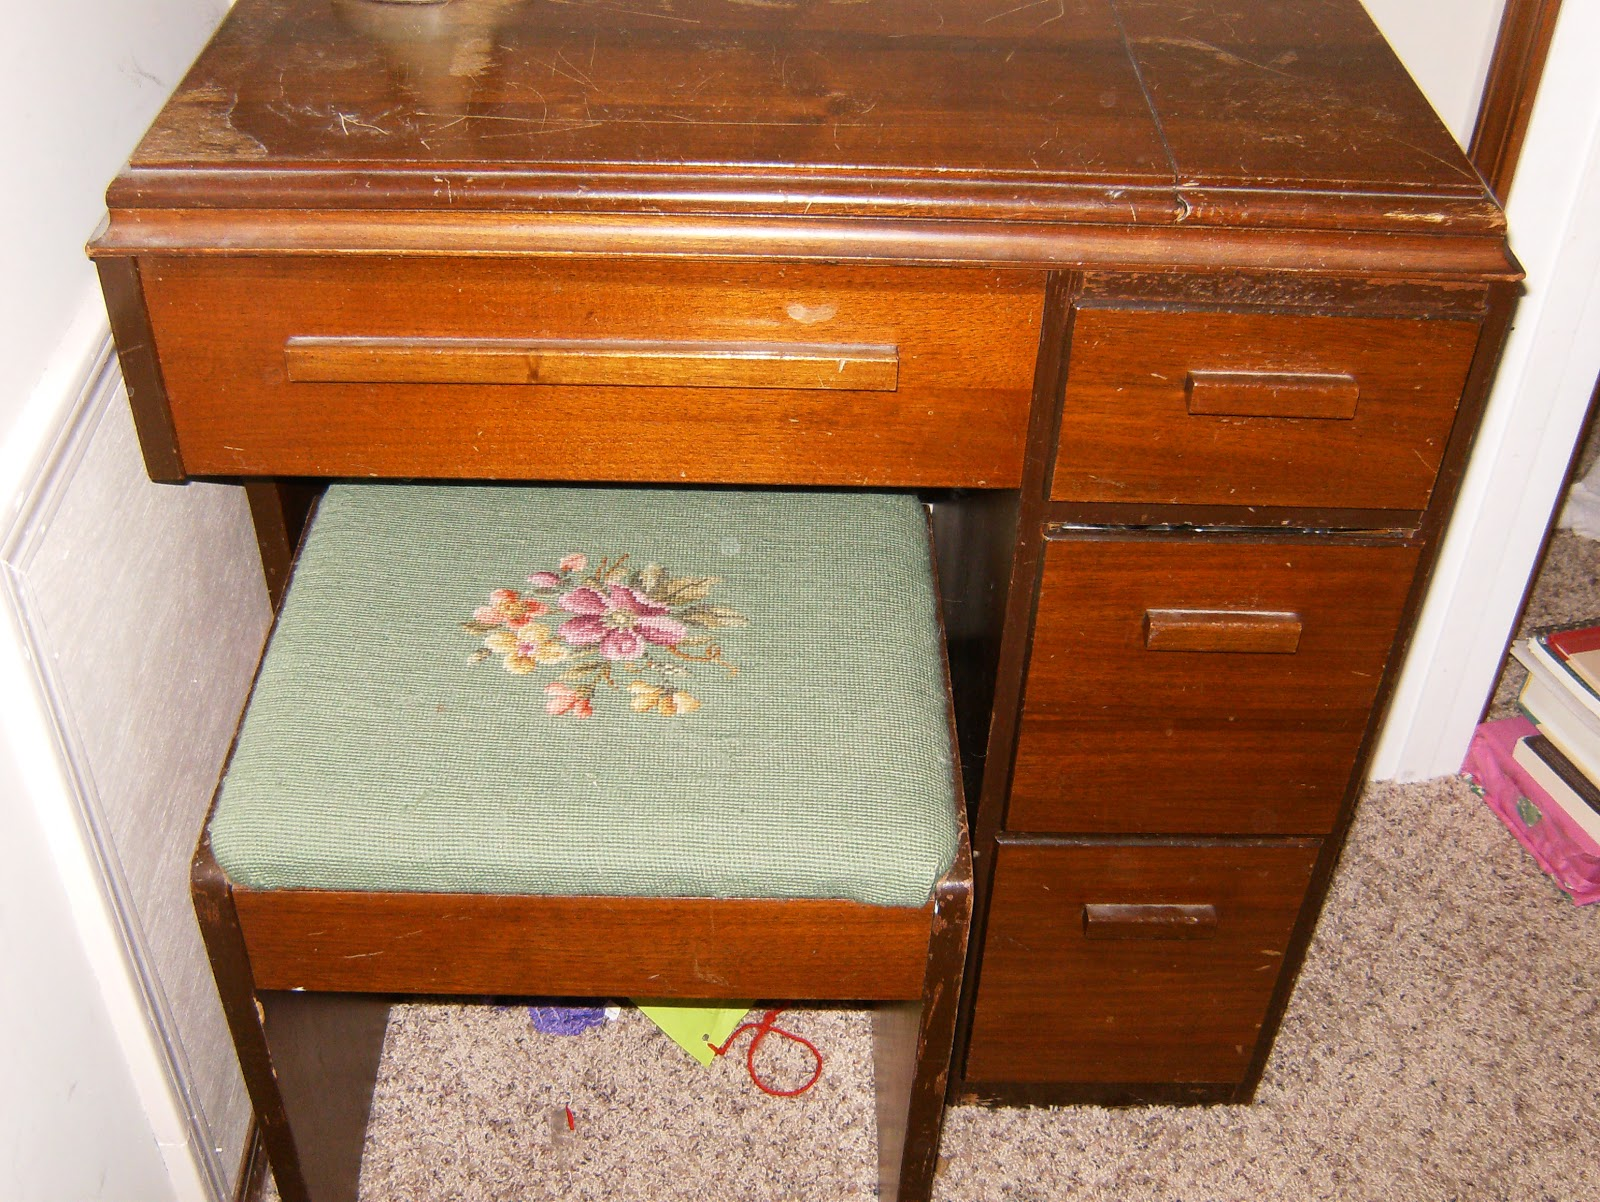 Grandmas Singer sewing machine in wood cabinet